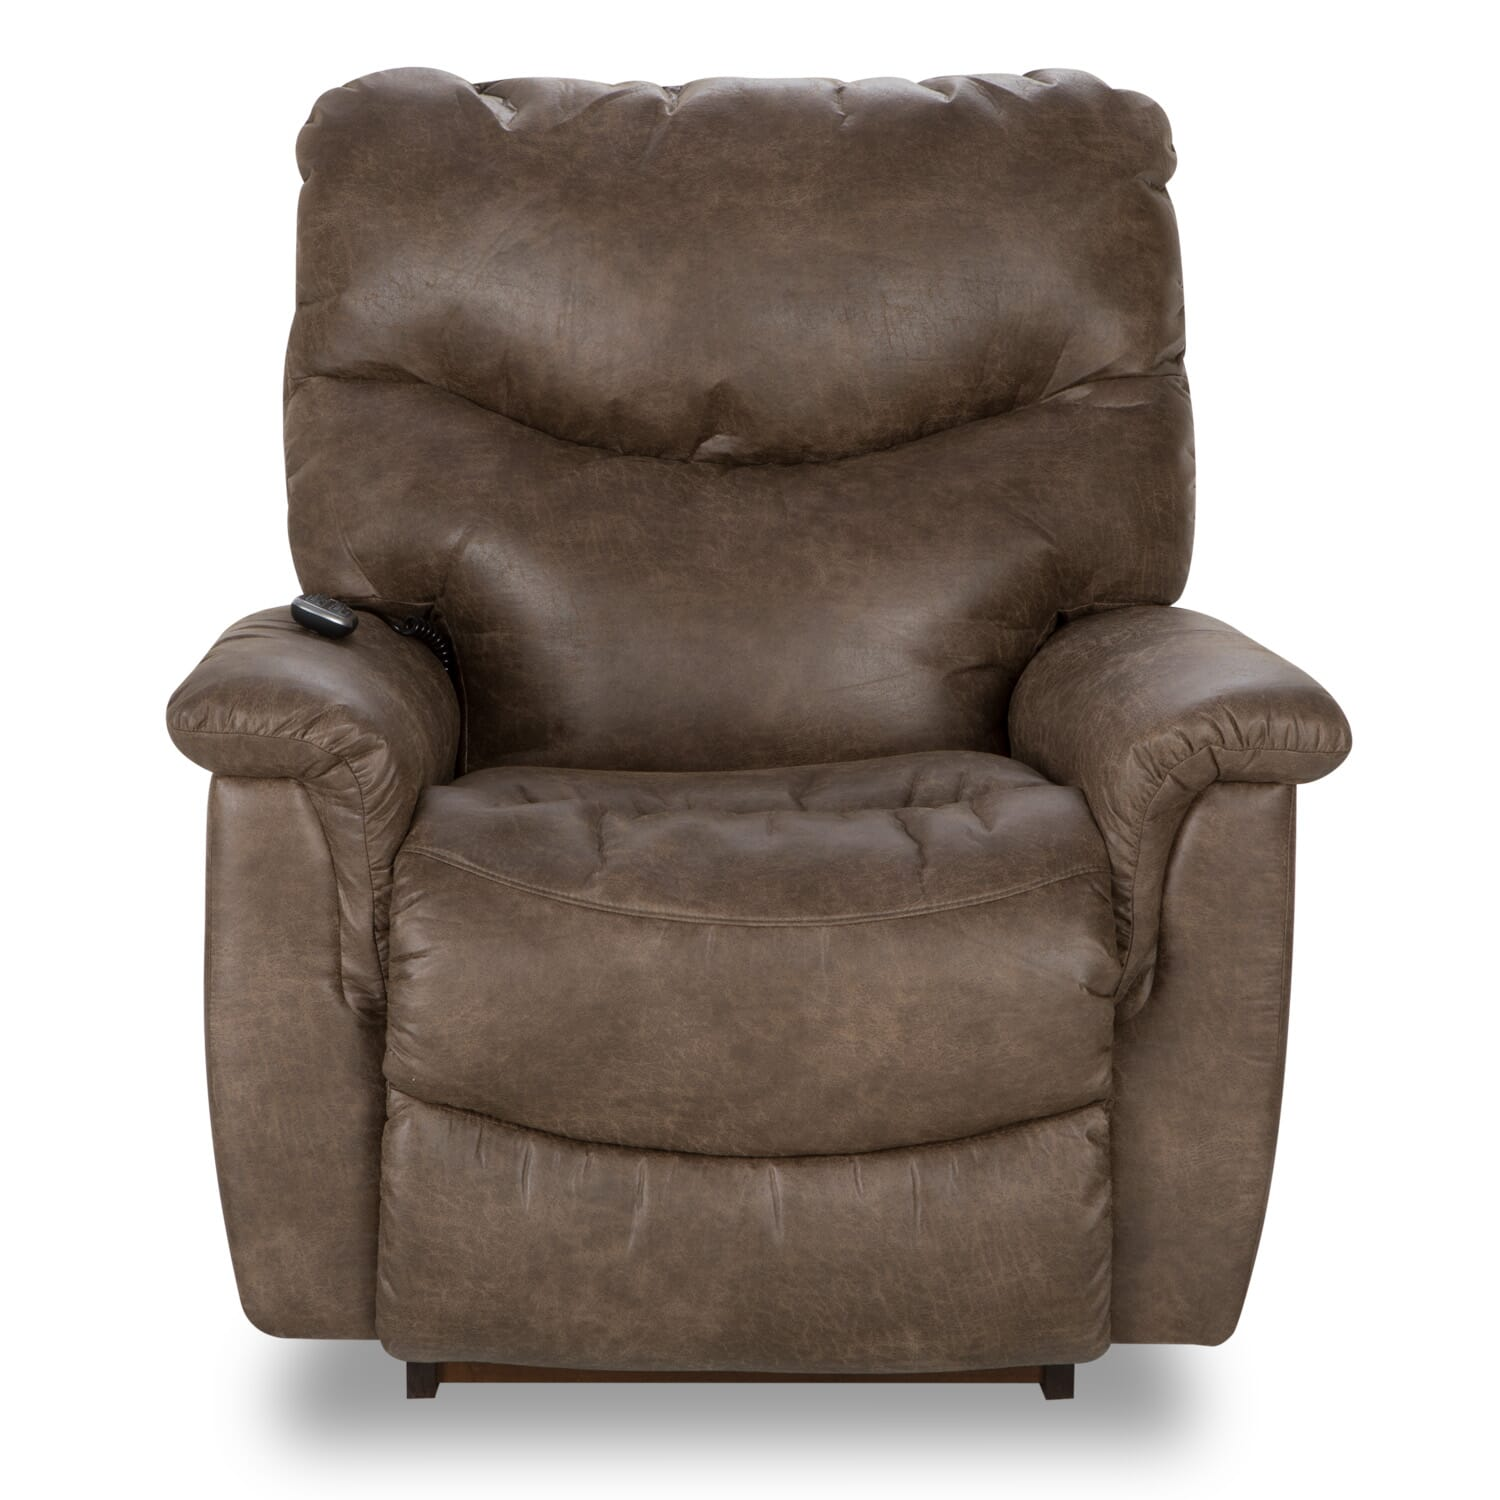 Piper Power Rocker Recliner Recliners Wg Amp R Furniture